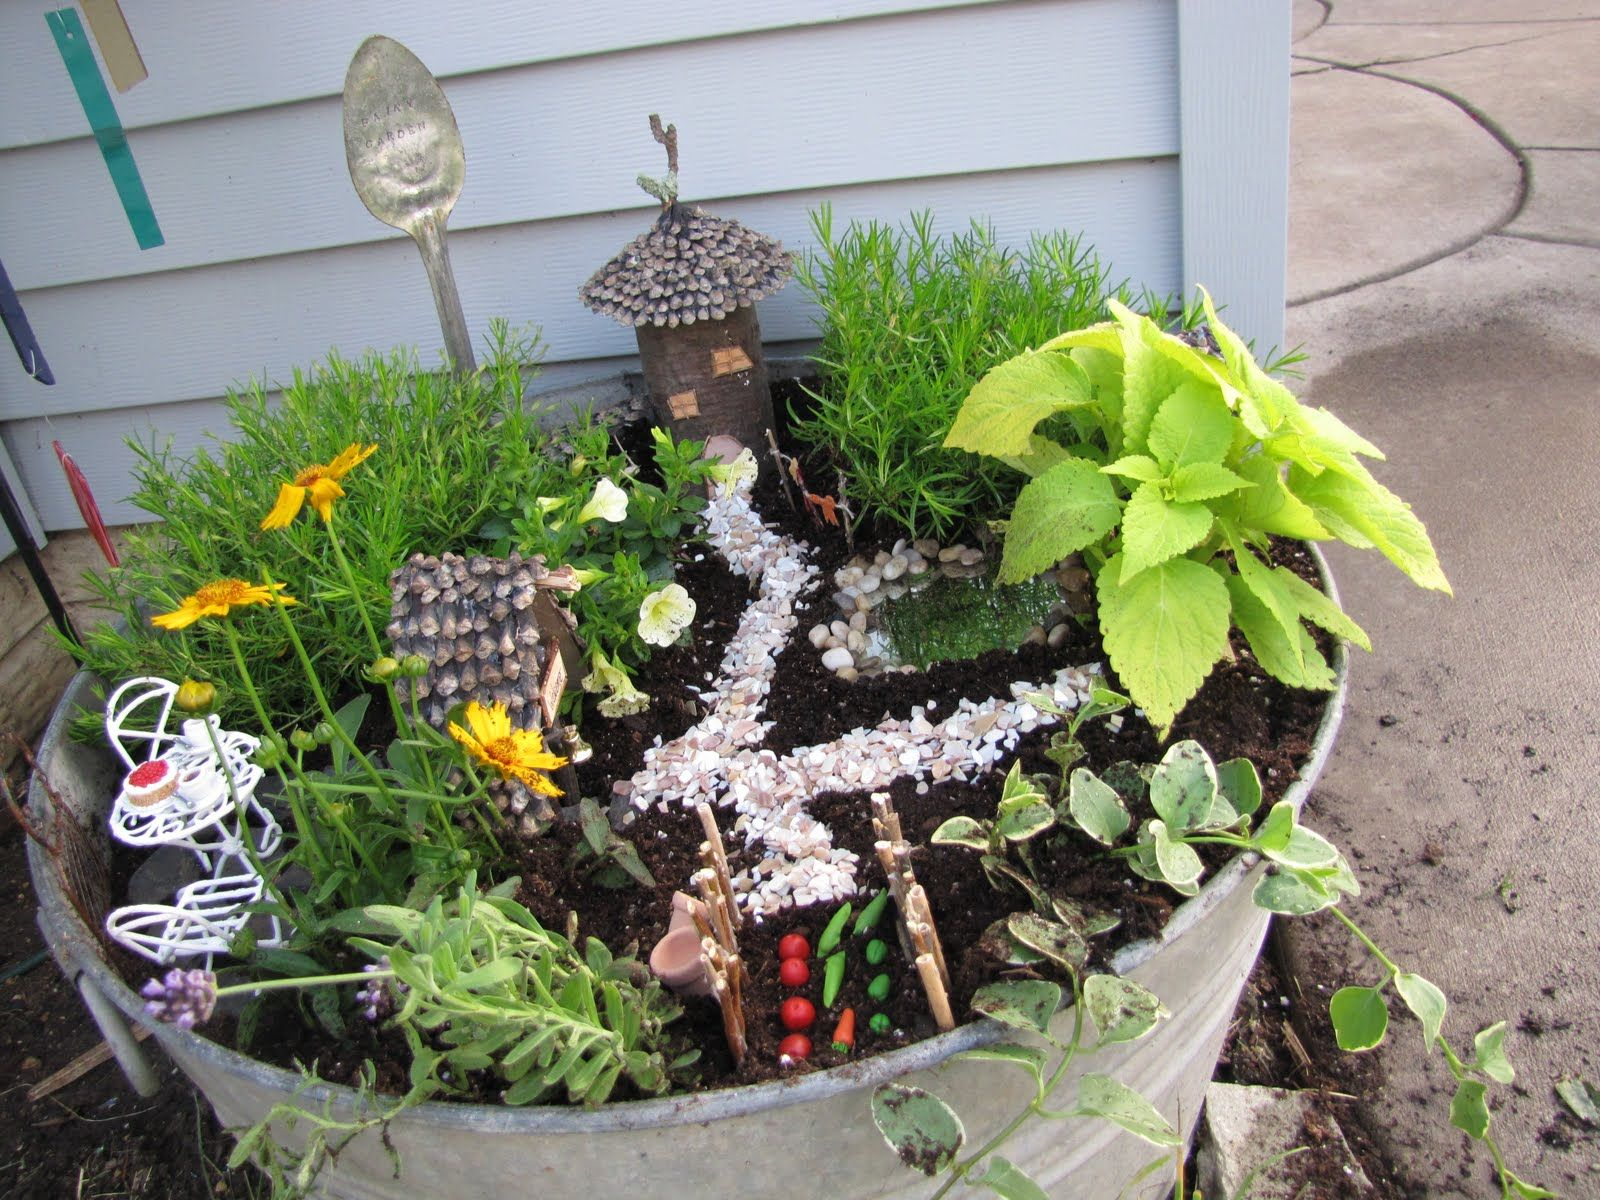 Fairy Garden Design Pictures wonderful mini garden design Images Of Fairy Gardens Fancilicious Fairylands The Mother Of All Fairy Gardens